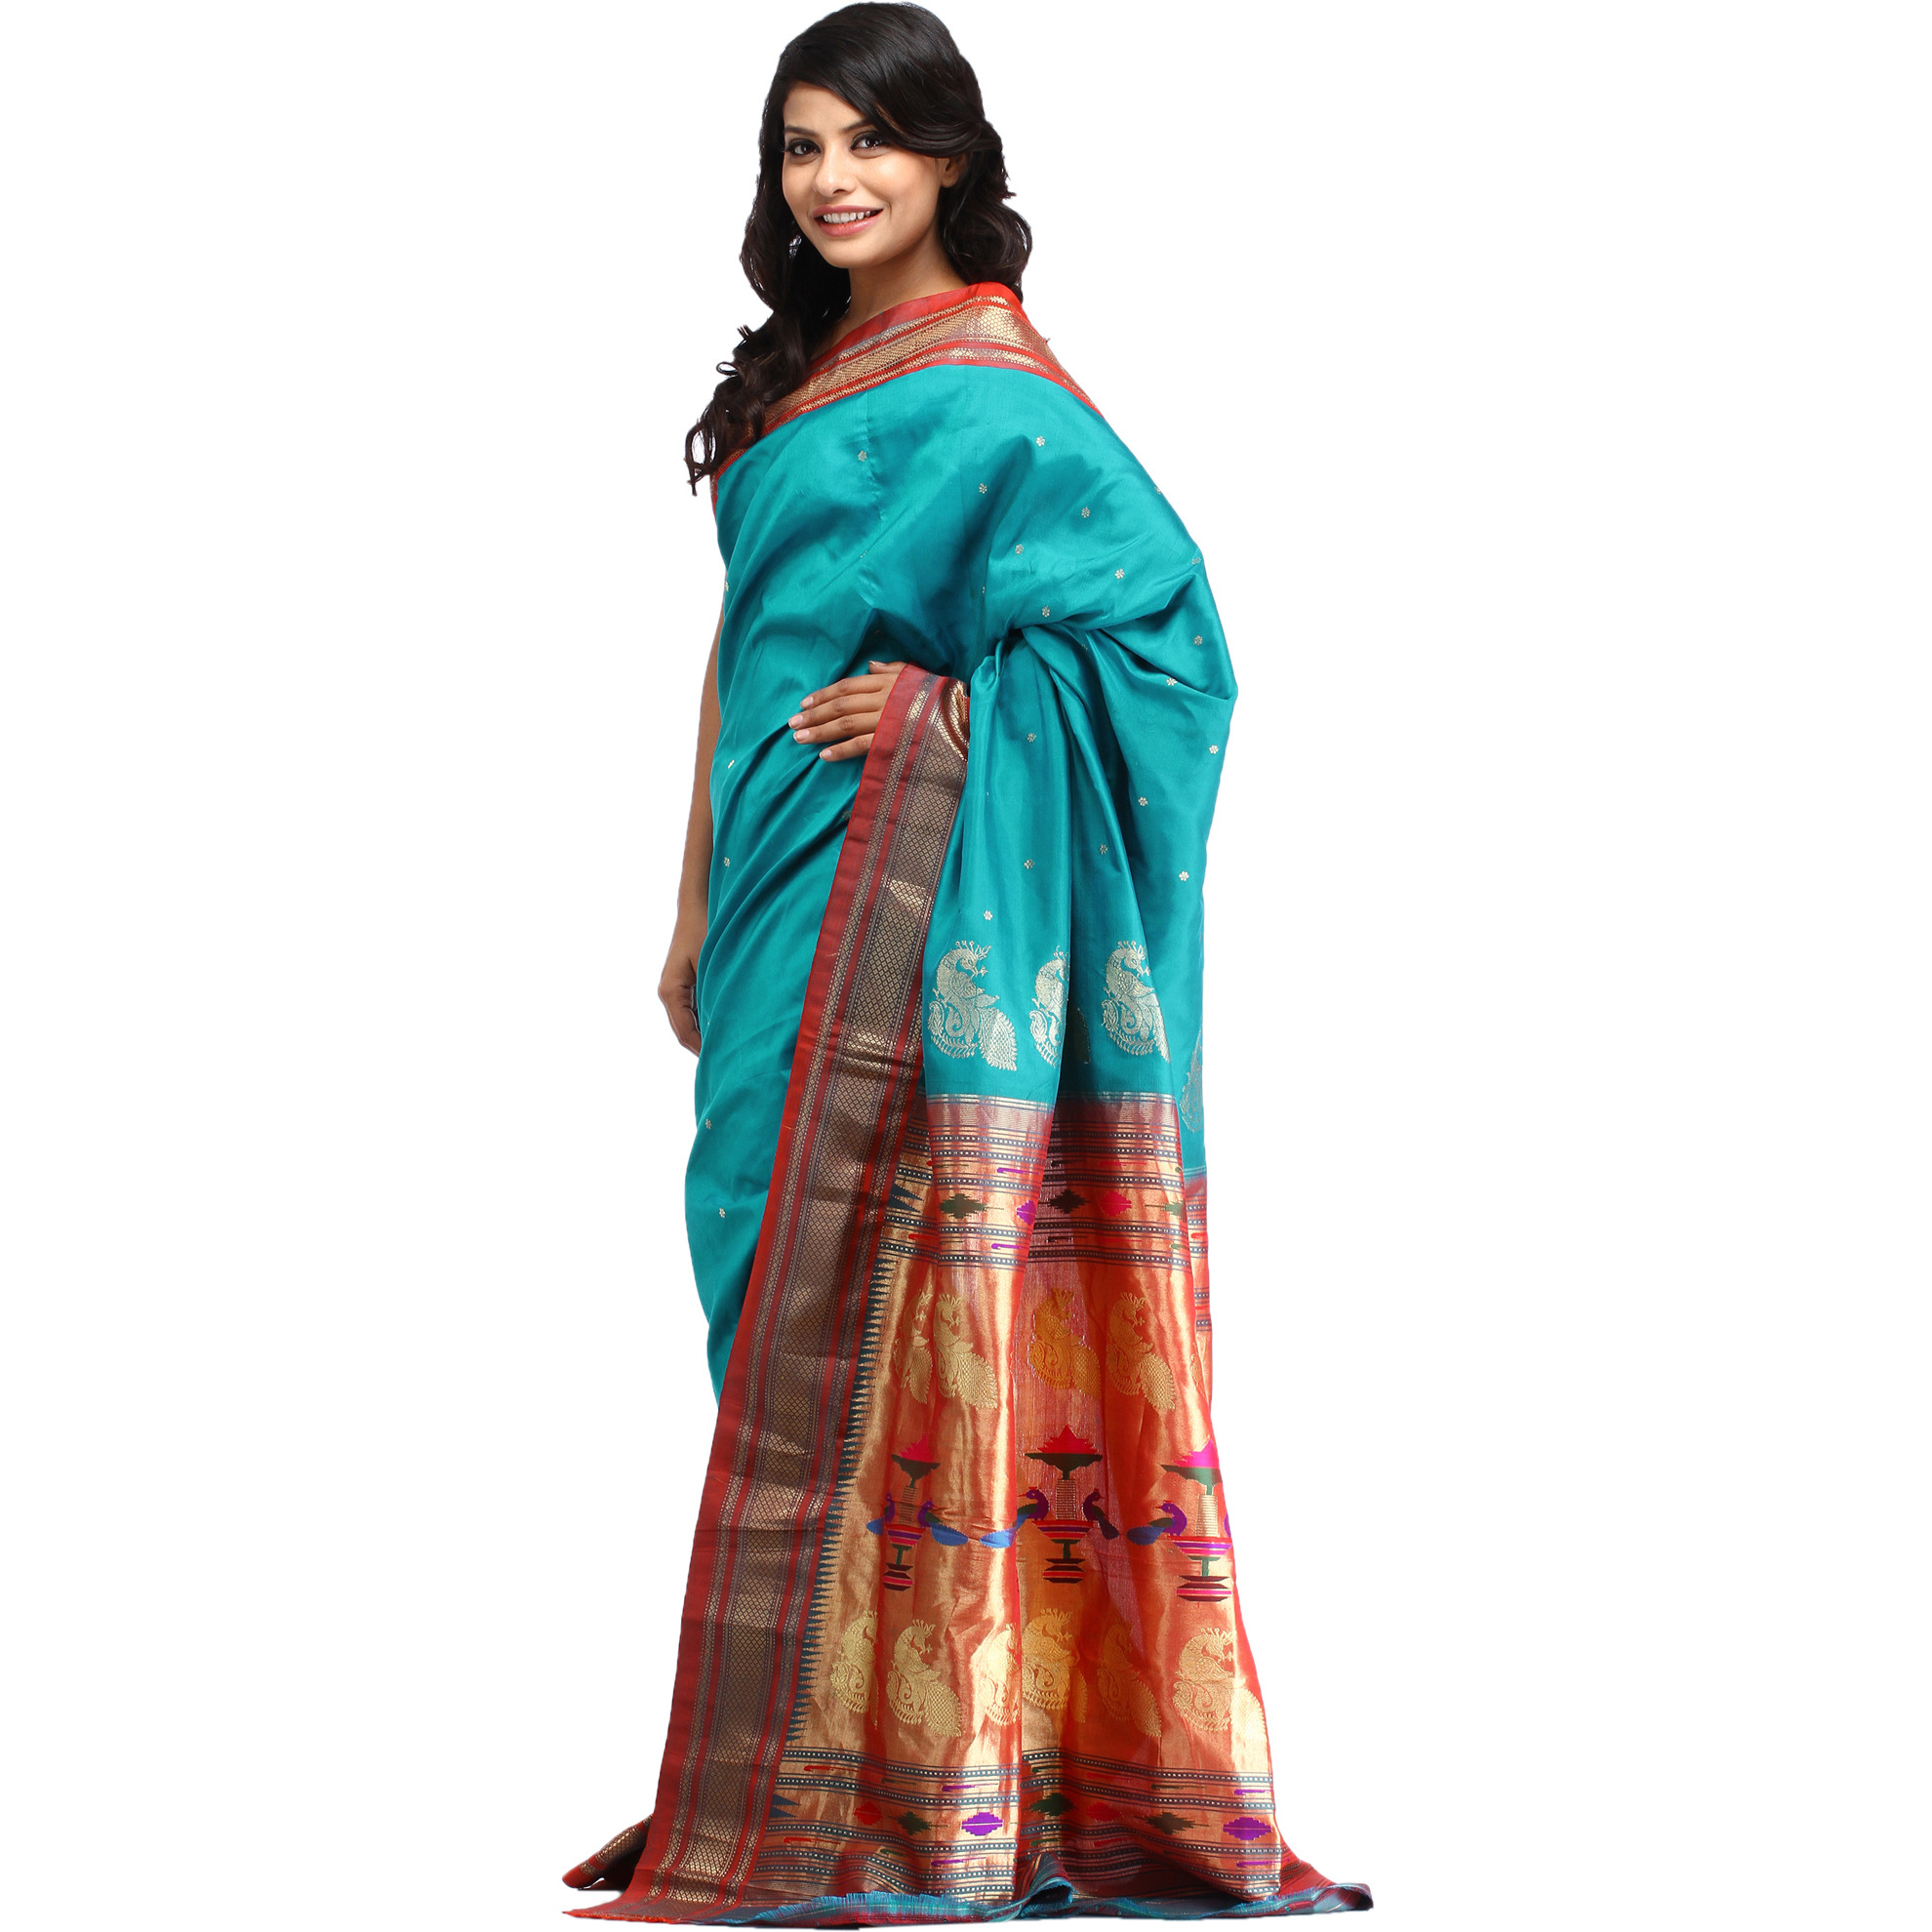 Viridian-Green Paithani Sari with Hand-woven Peacocks on Pallu